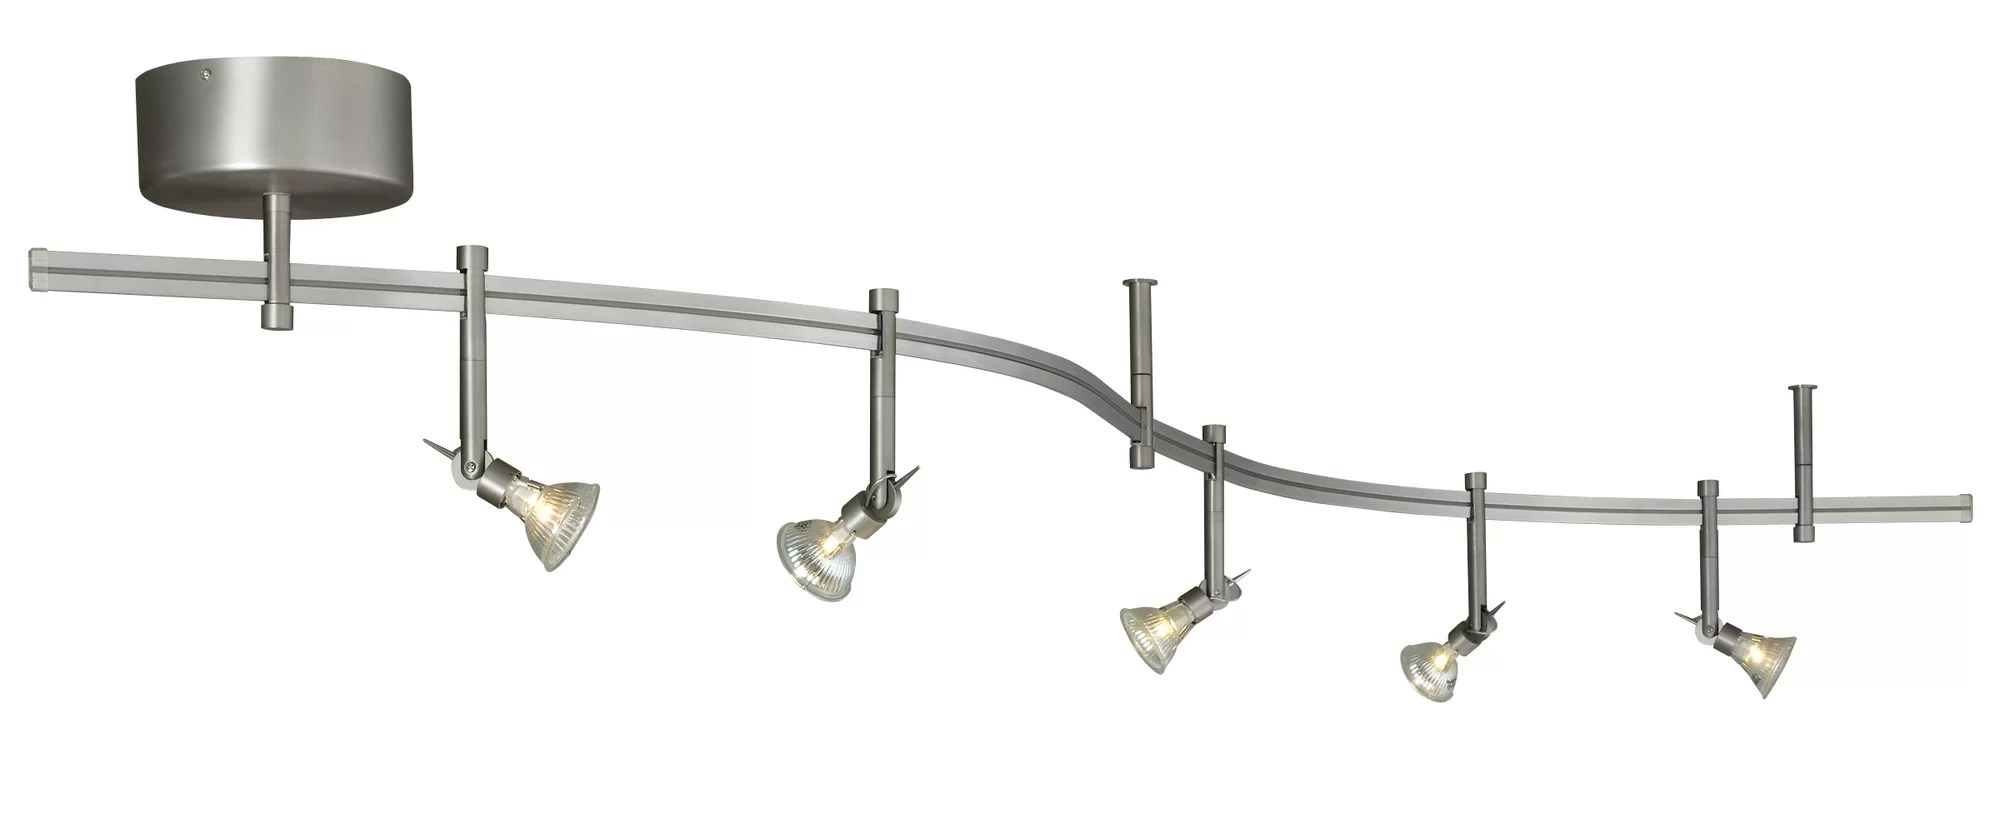 Tech Lighting Tiella 5 Light Decorative Flexible Track